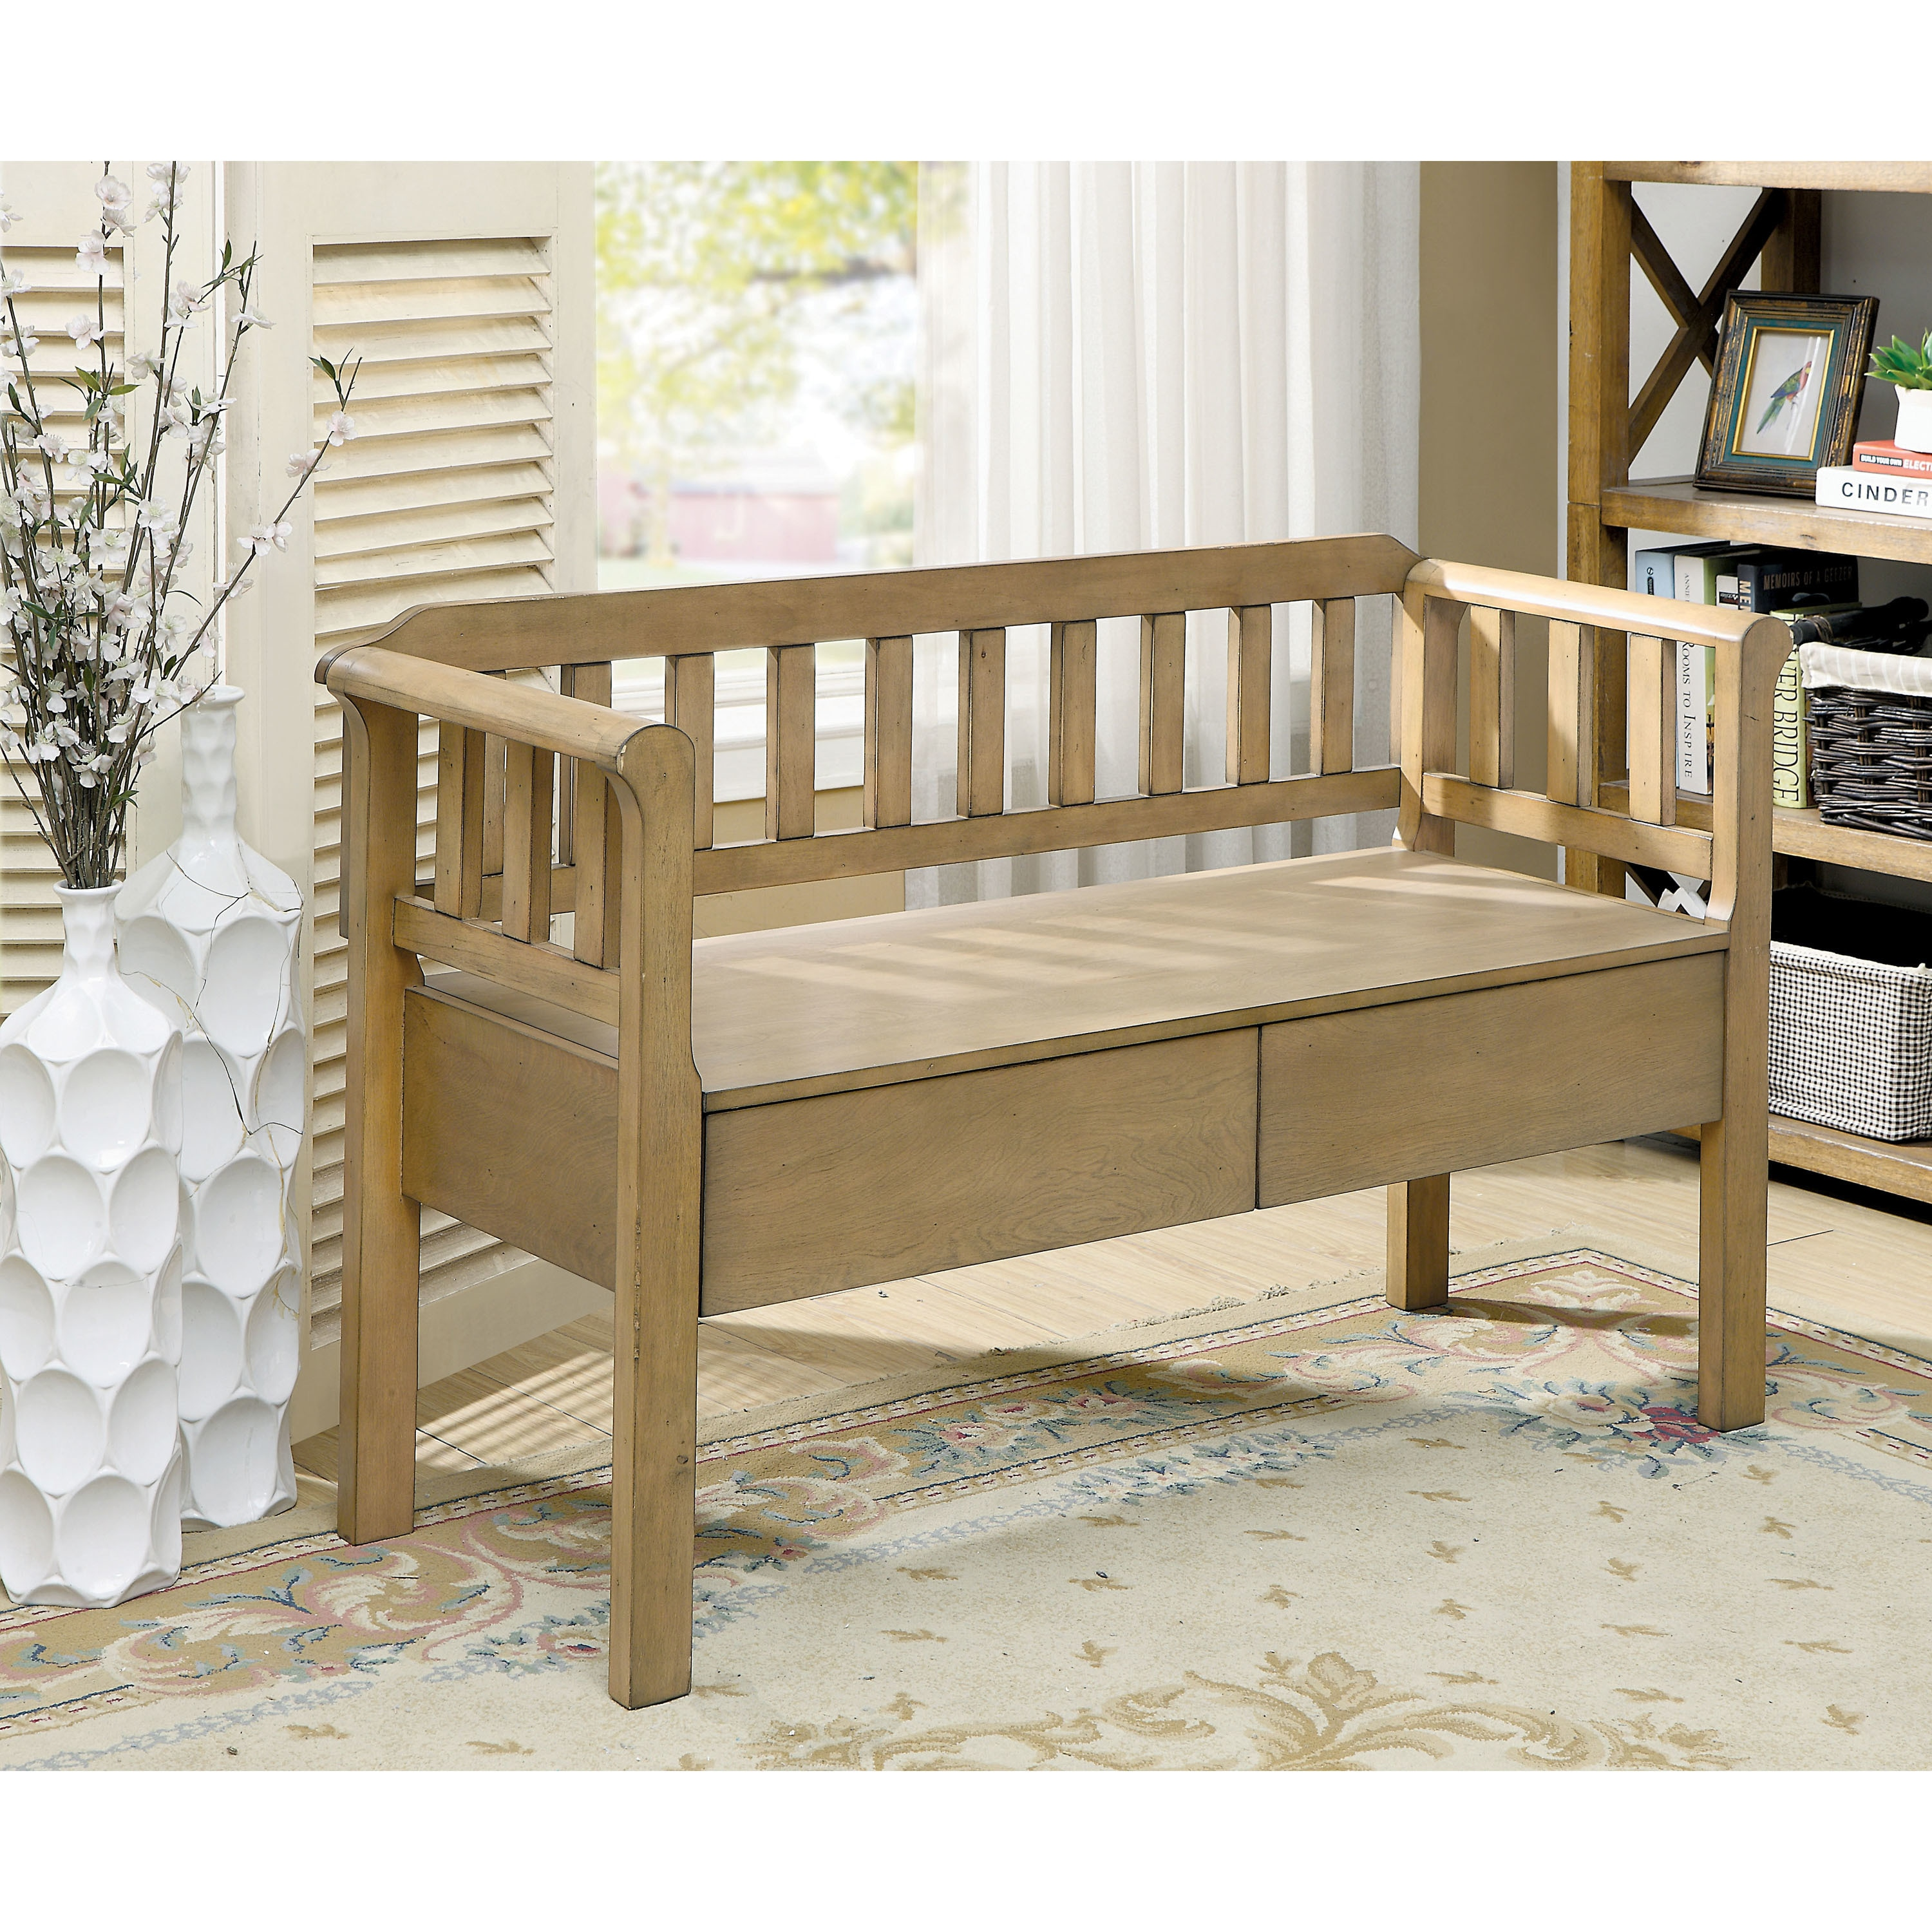 Furniture Of America Trenton Country Style Wood Slatted 2 Drawer Entryway  Bench   Free Shipping Today   Overstock   25484949